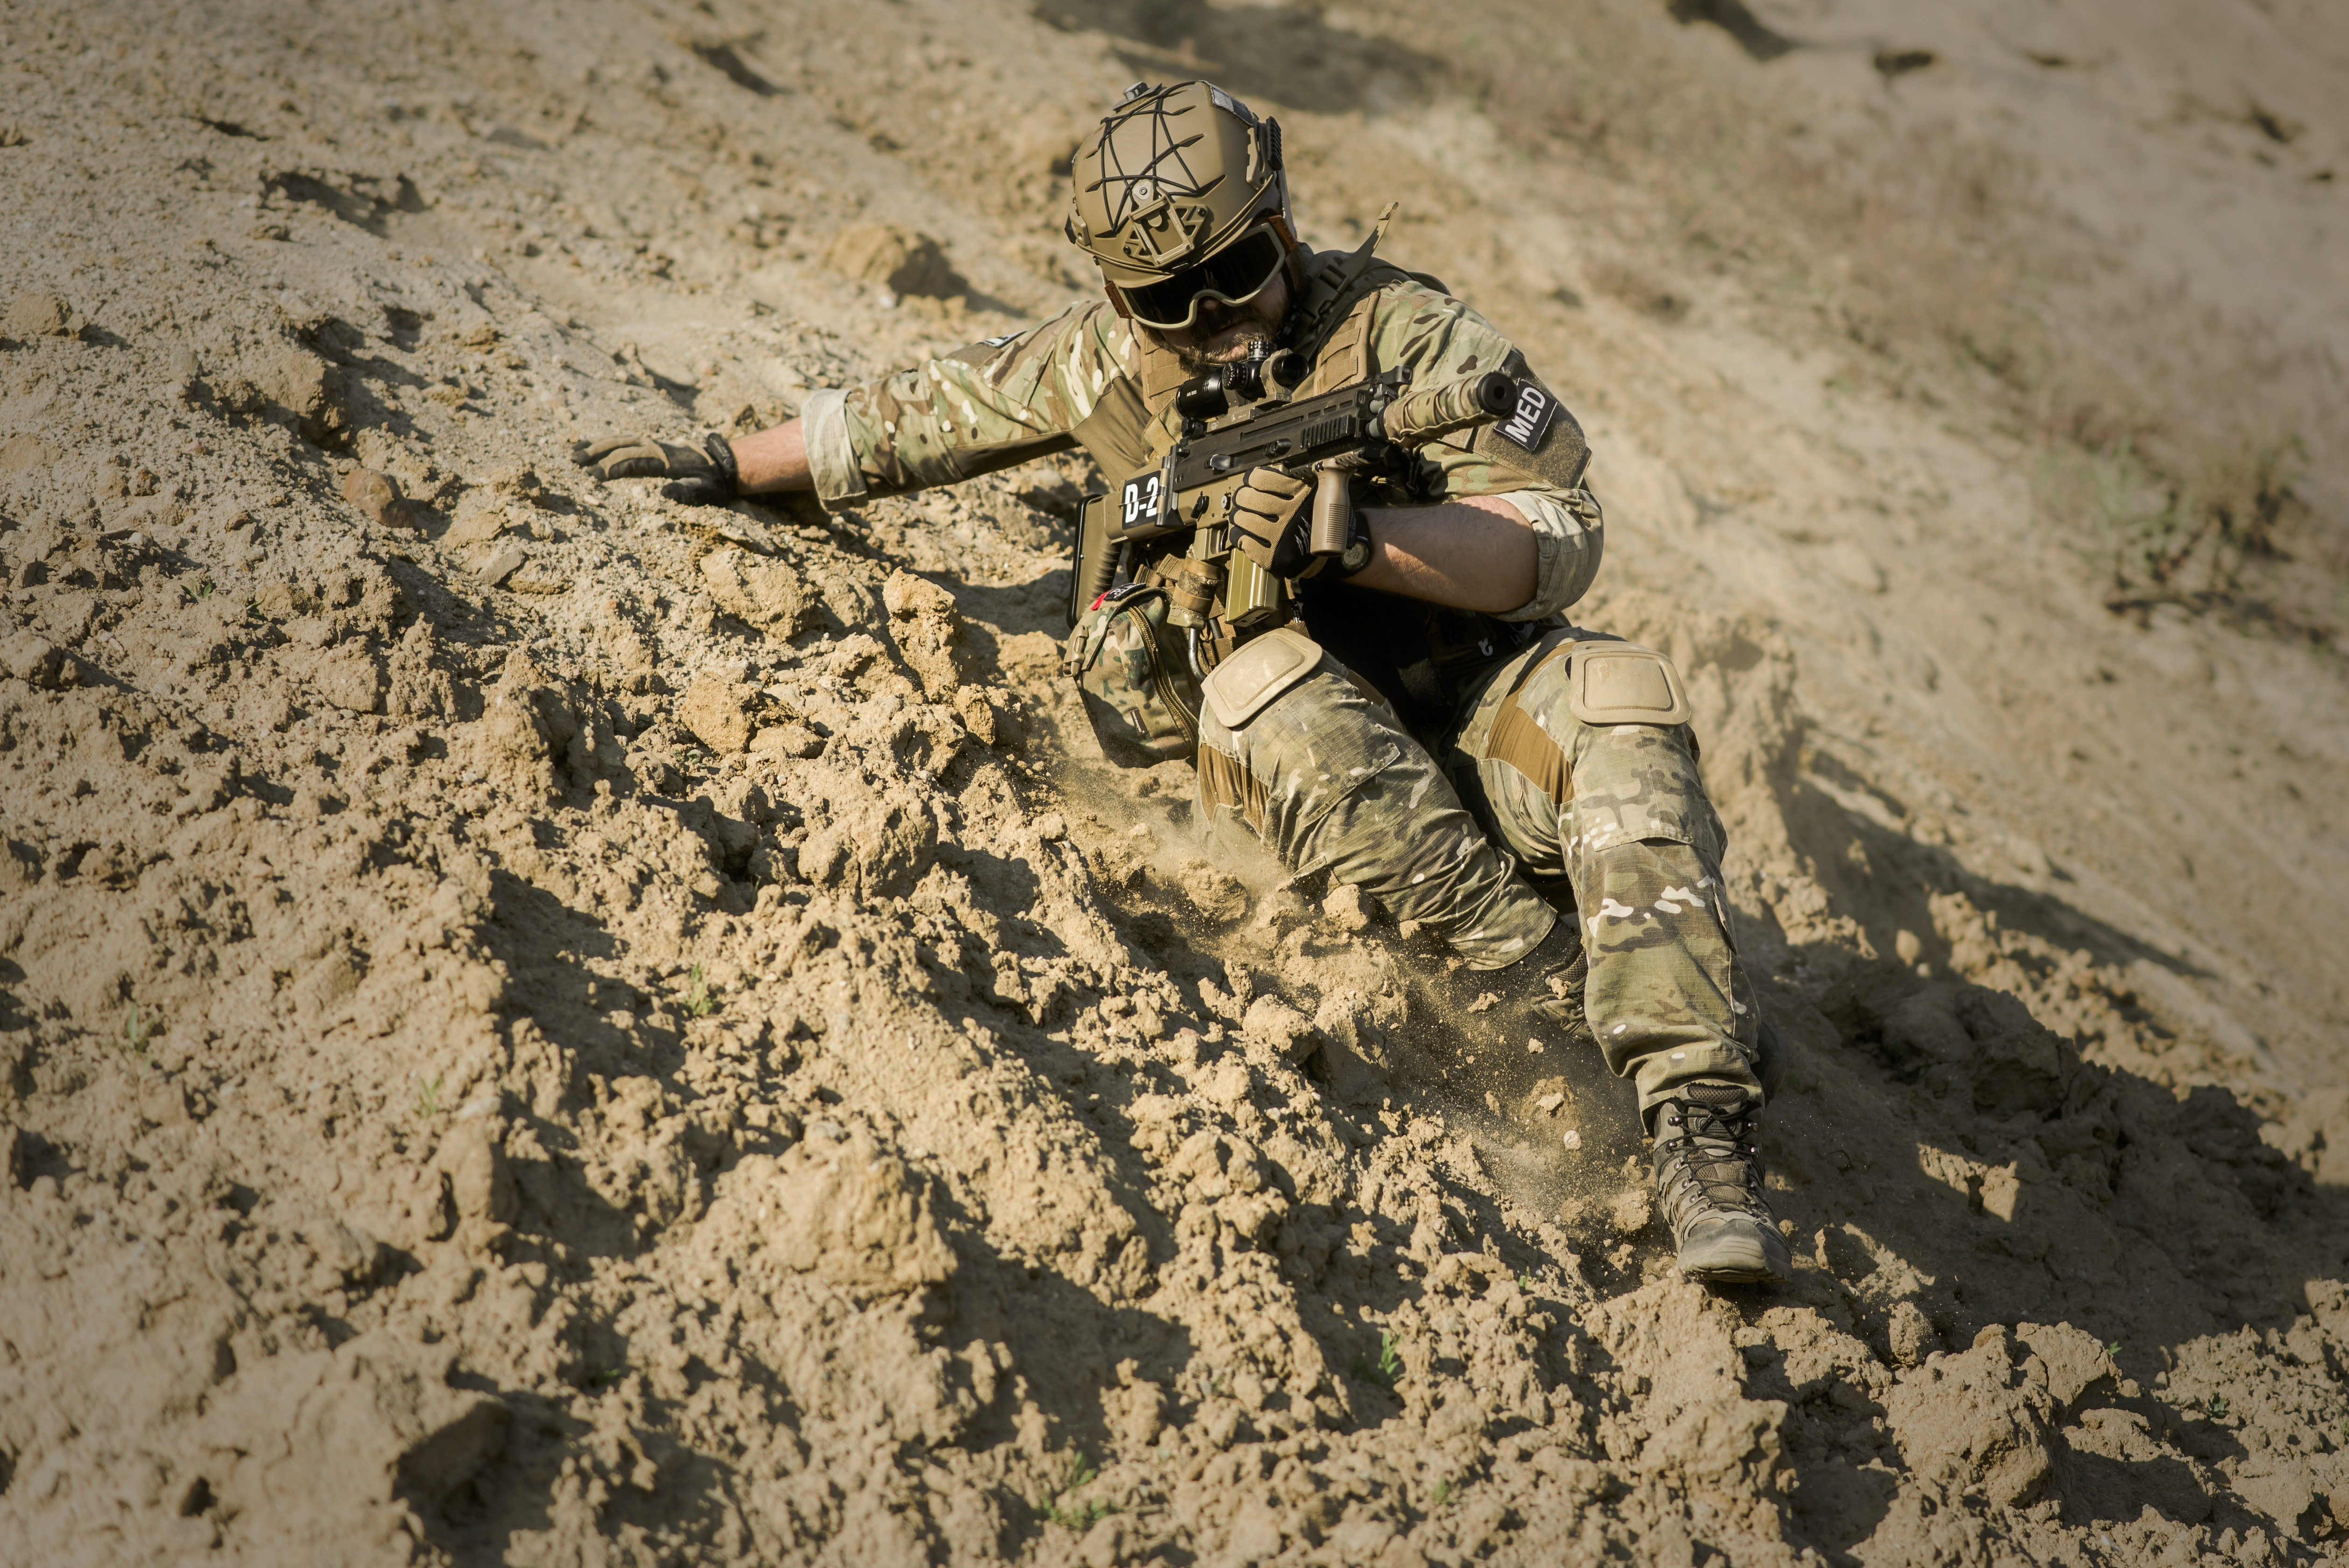 Soldier Sliding Downhill Holding Rifle during Daytime, Action, Adventure, Army, Camouflage, HQ Photo